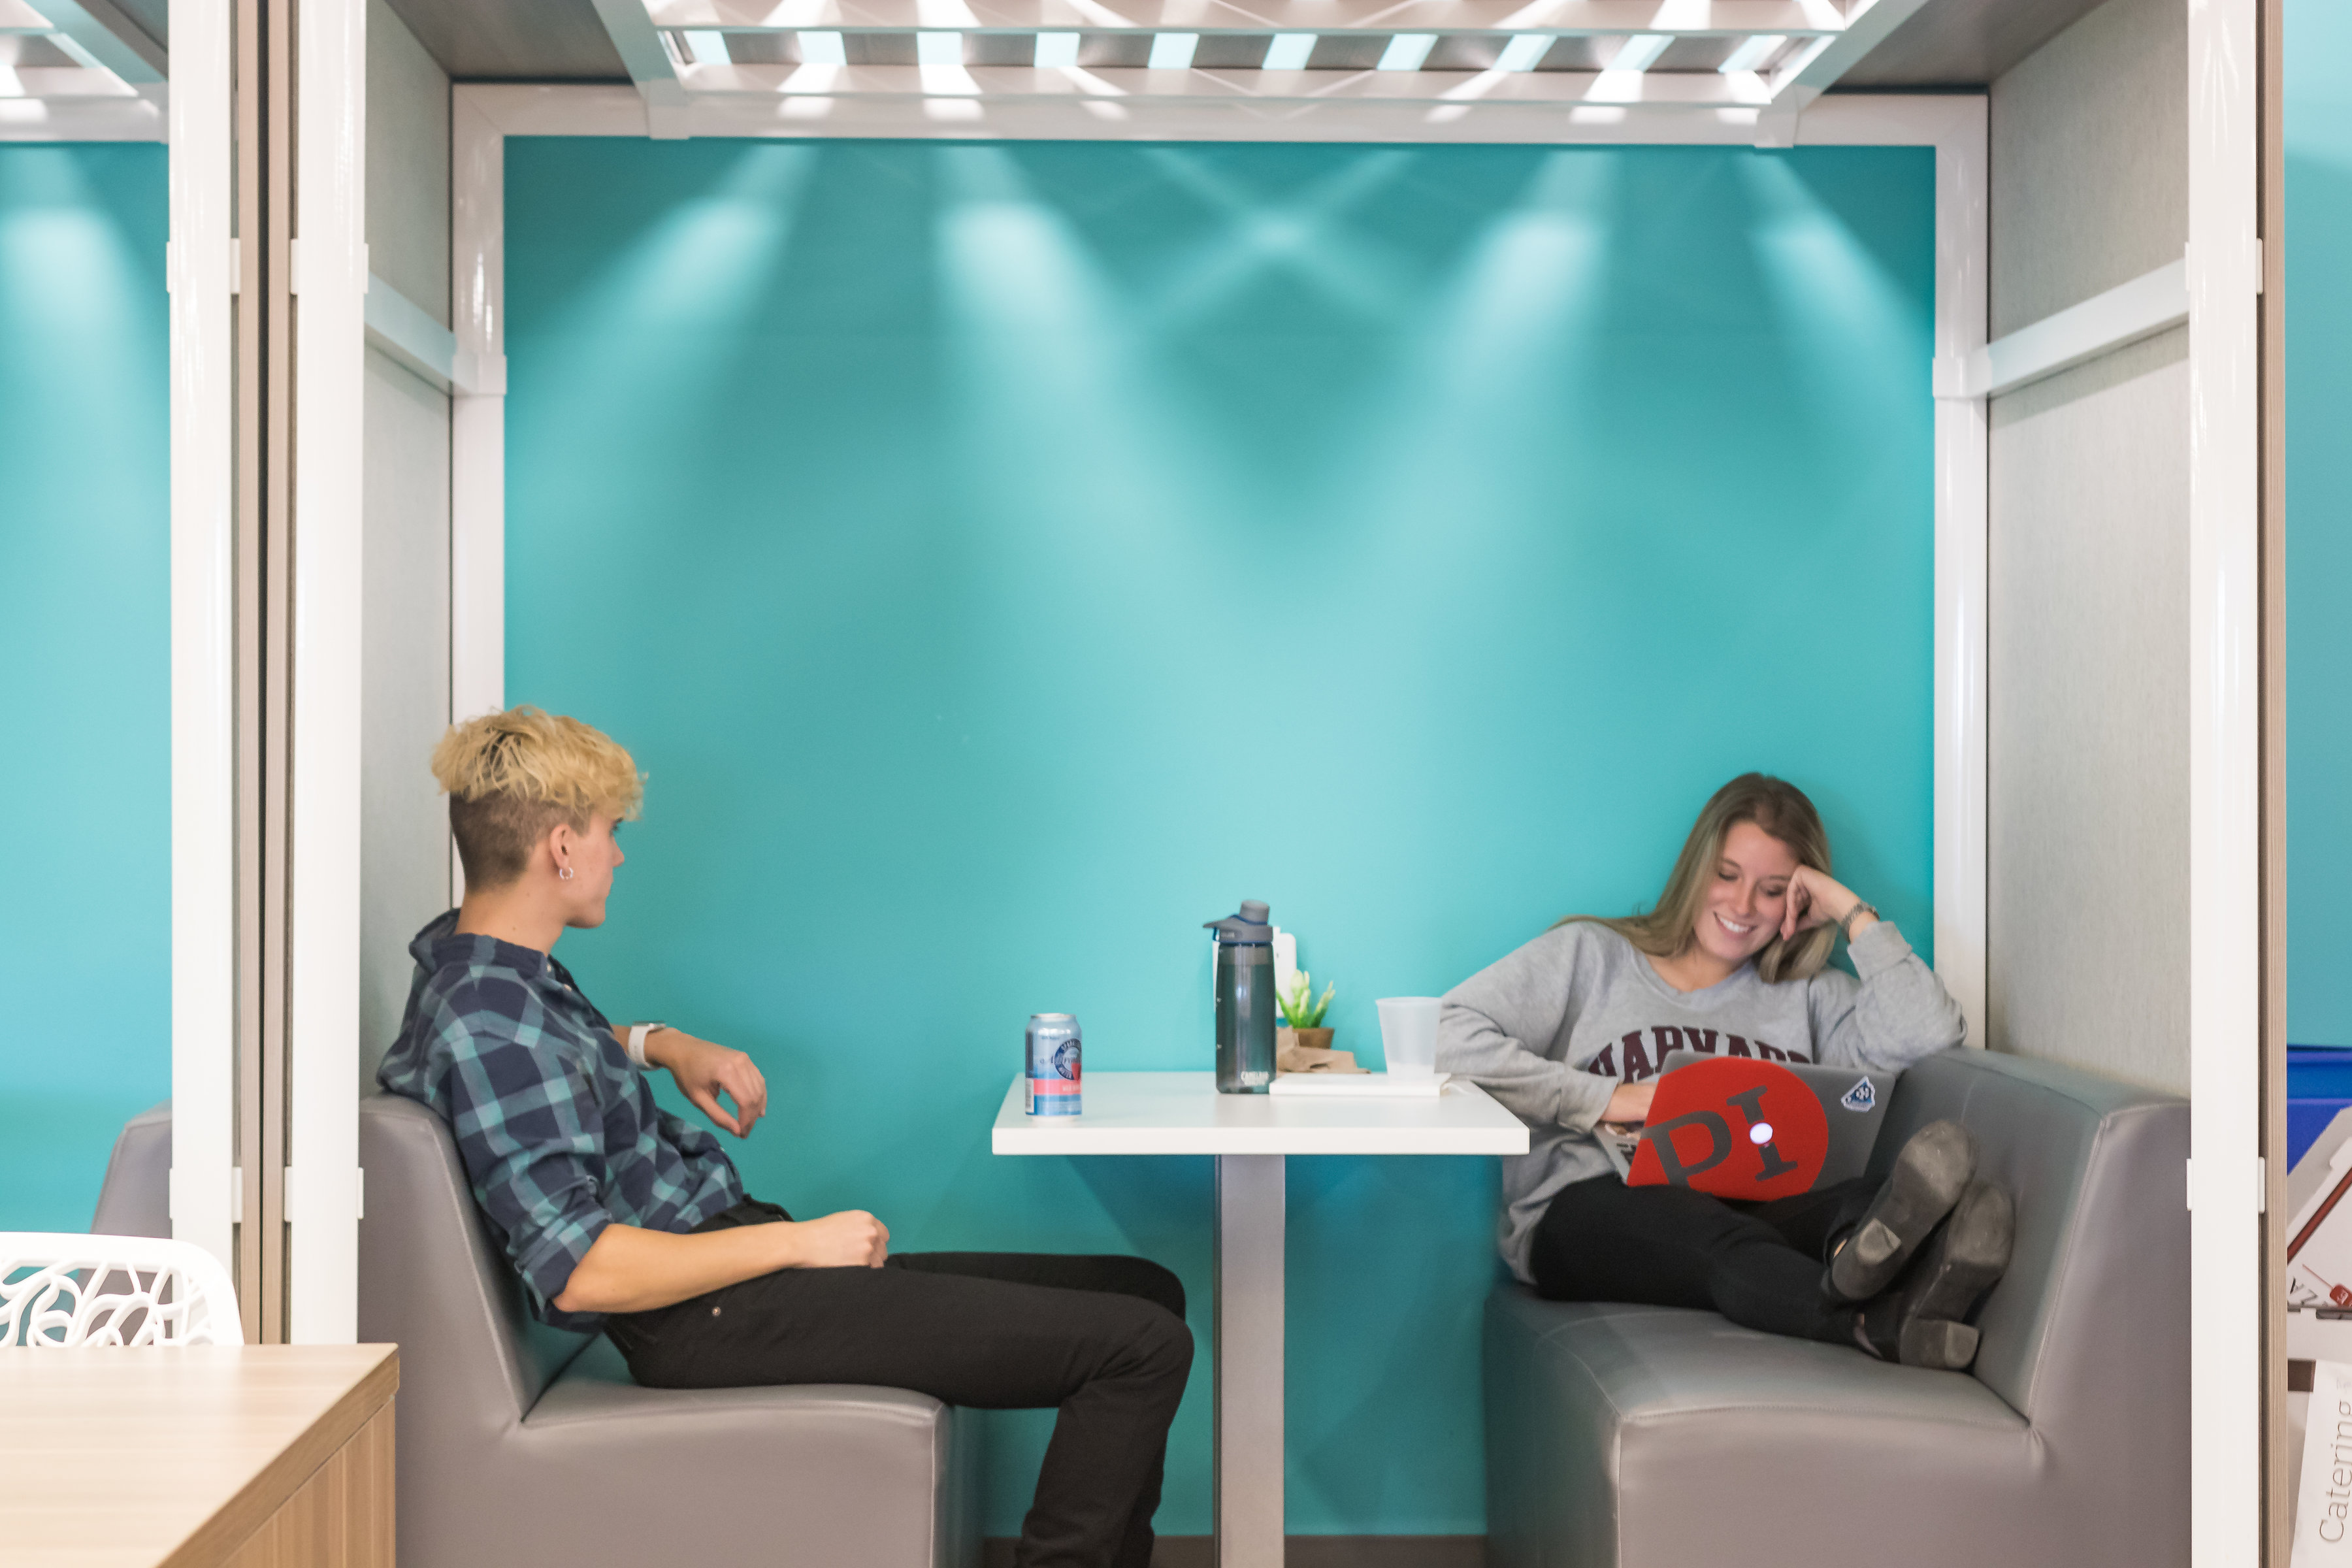 Managing millennials in the workplace means providing many casual seating options